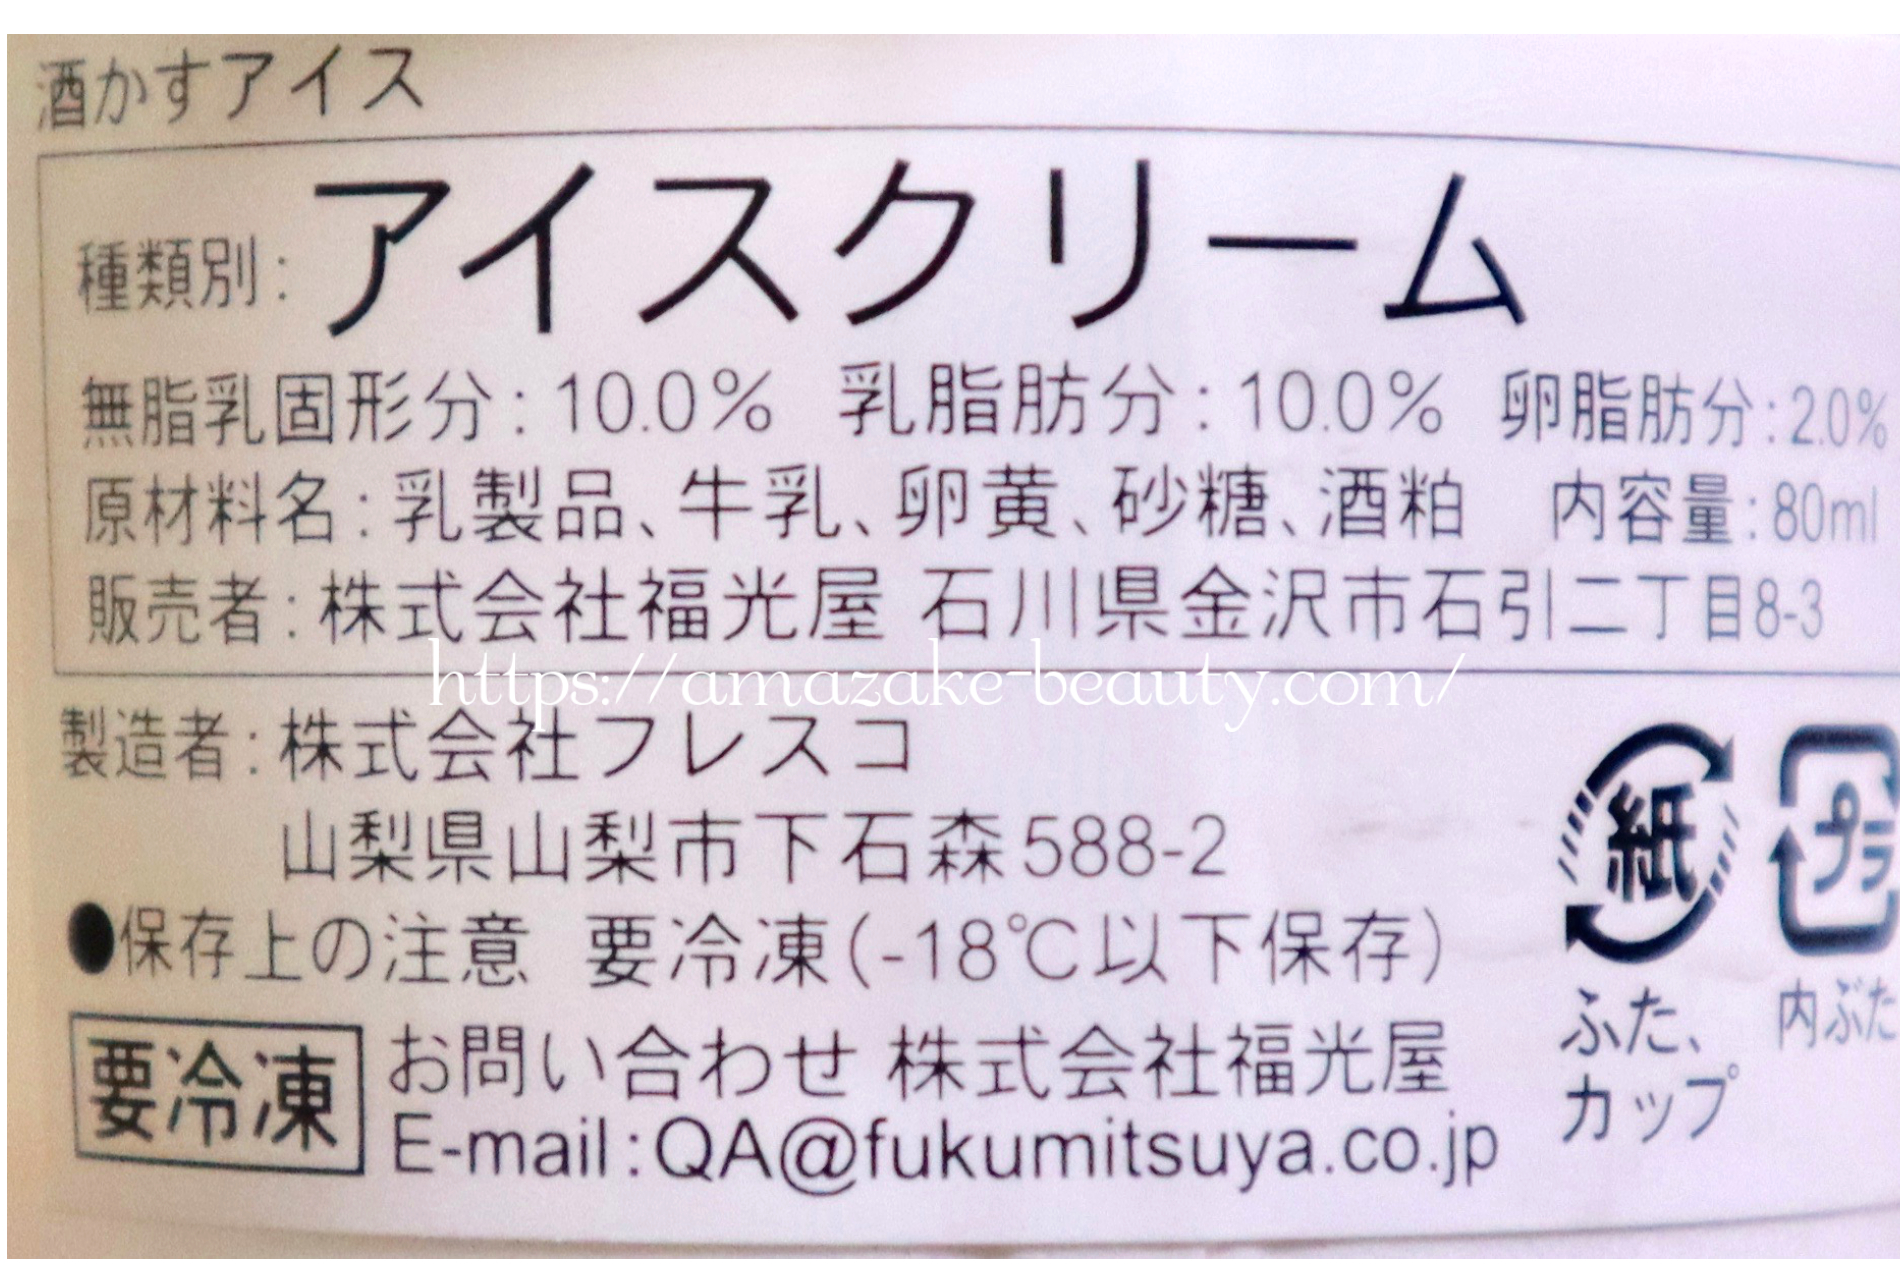 [amazake sweets]fukumitsuya[sakekasu aisu](product description)